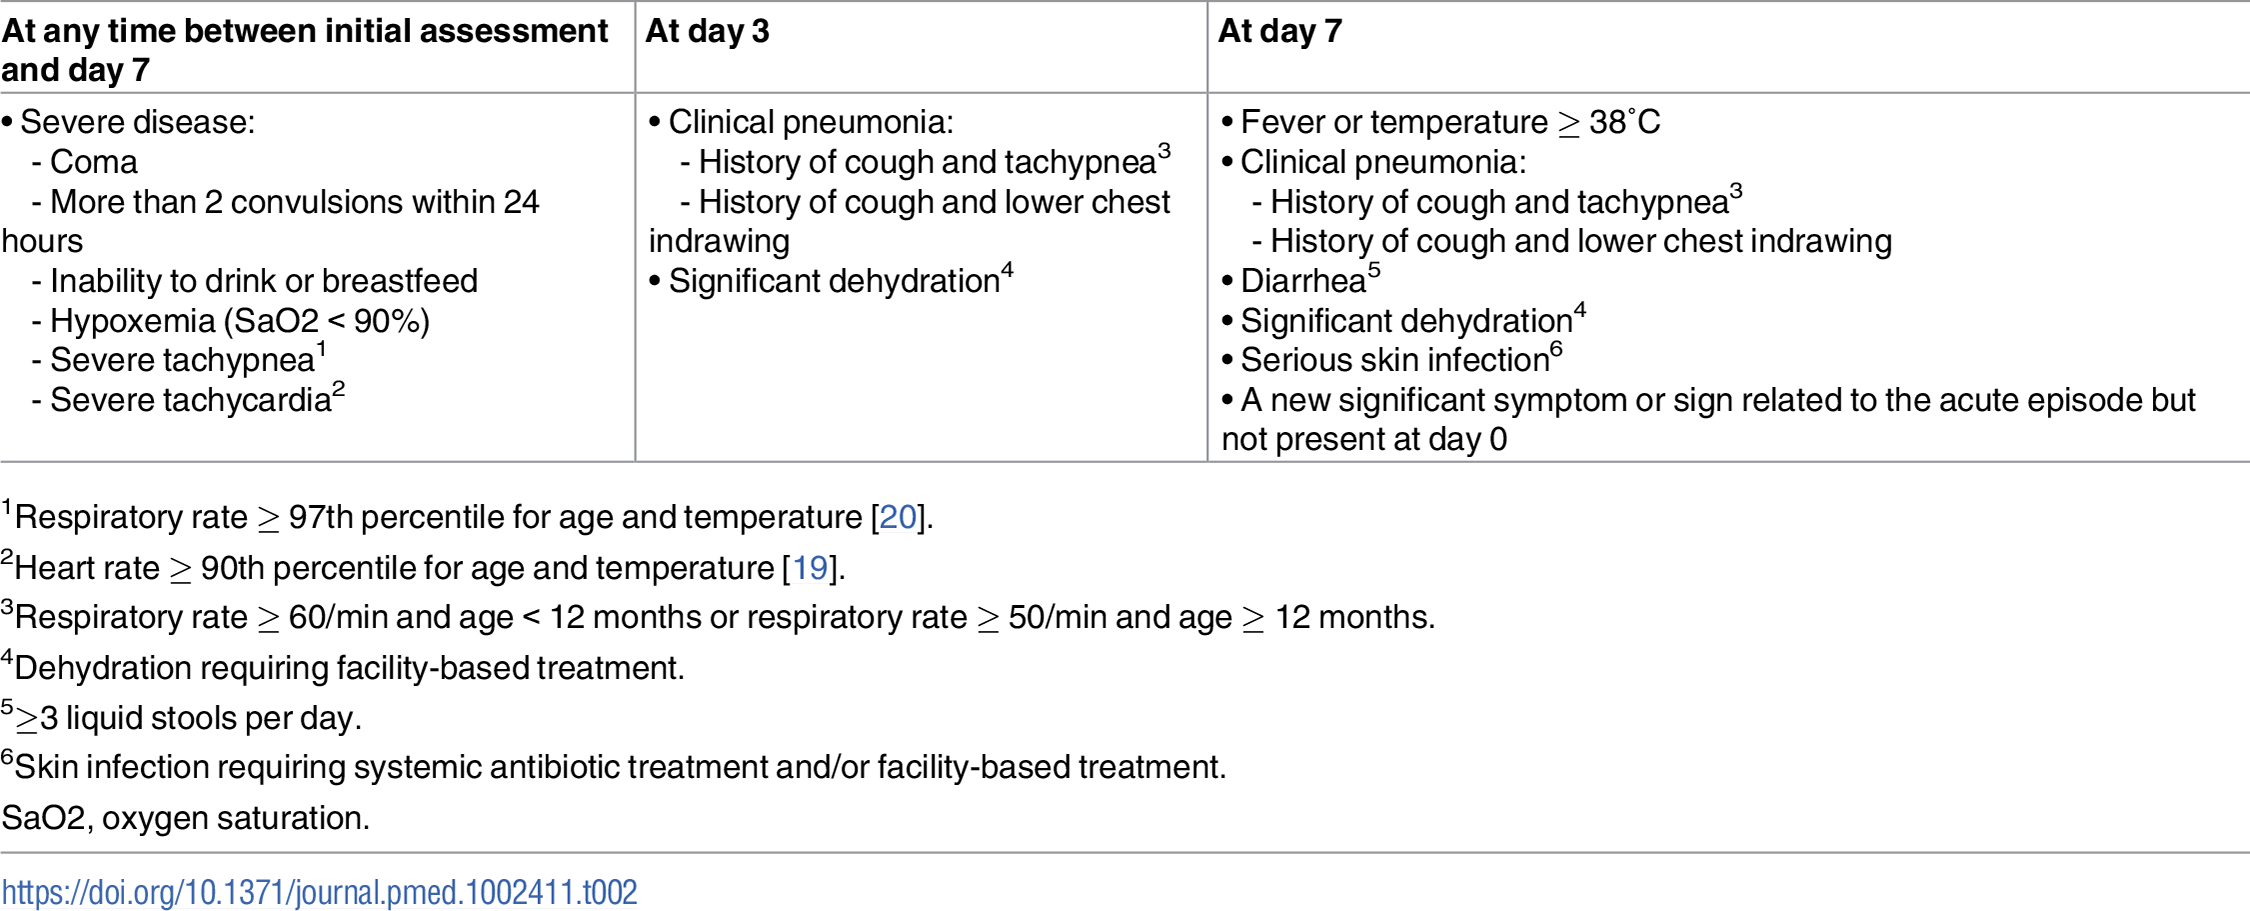 Definition of clinical failure by day 7 (primary outcome measure).